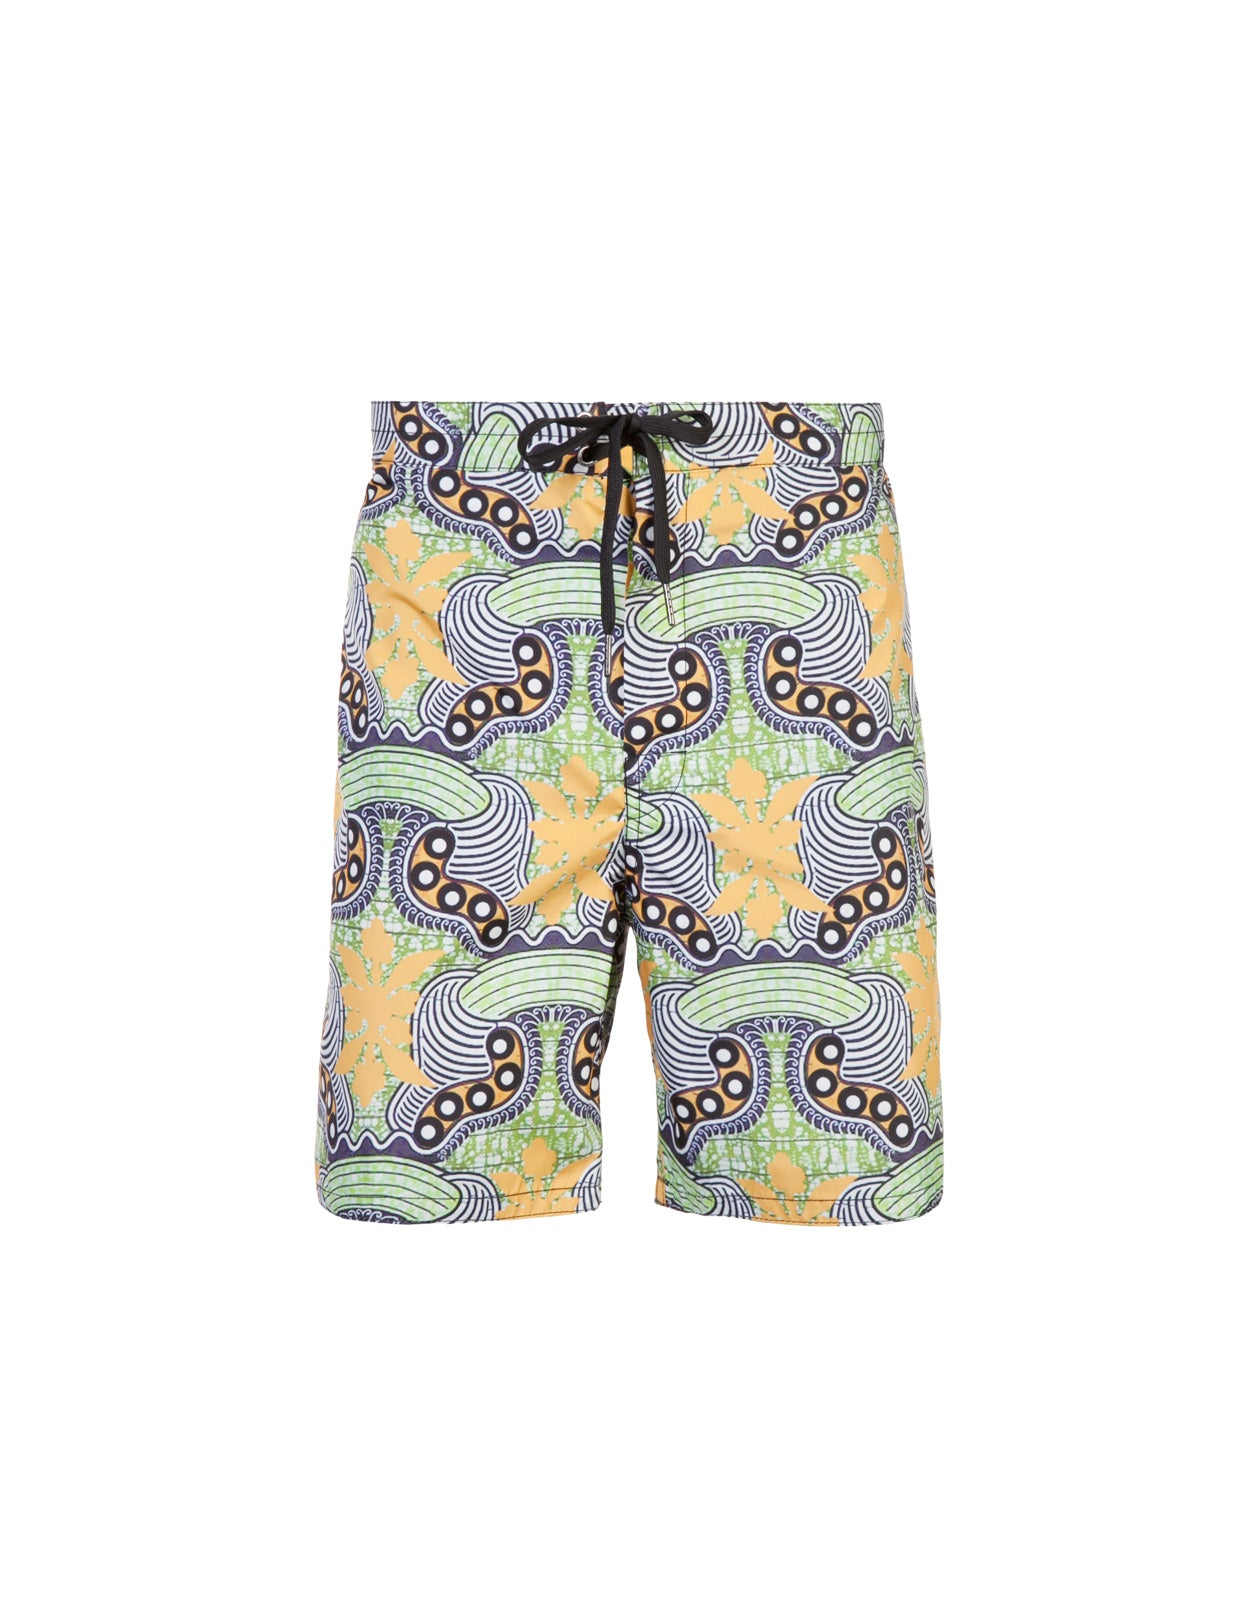 Product image of board shorts in abstract graphic print.